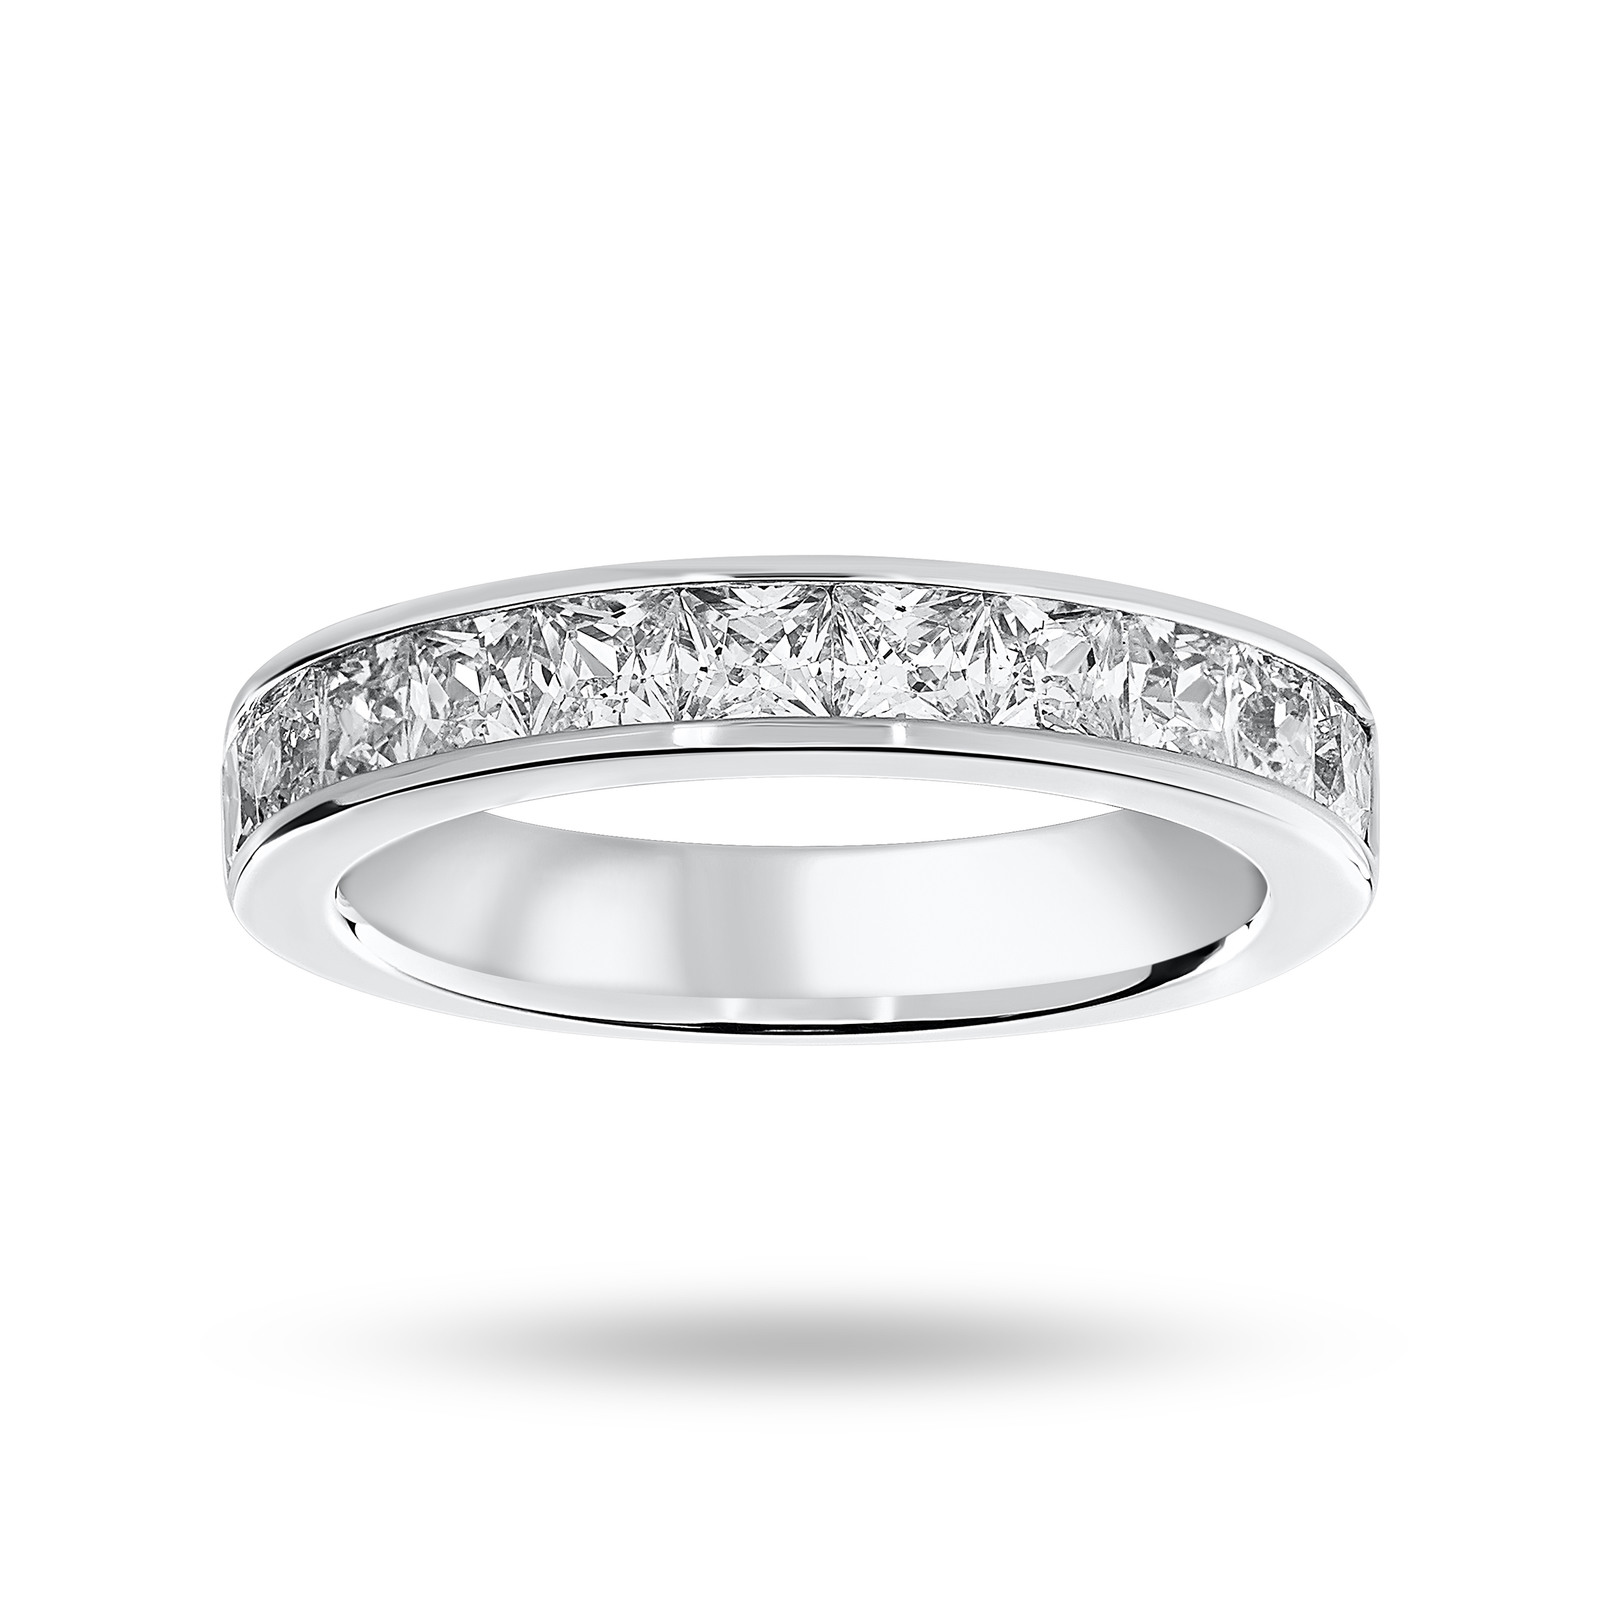 Platinum 1.50 Carat Princess Cut Half Eternity Ring